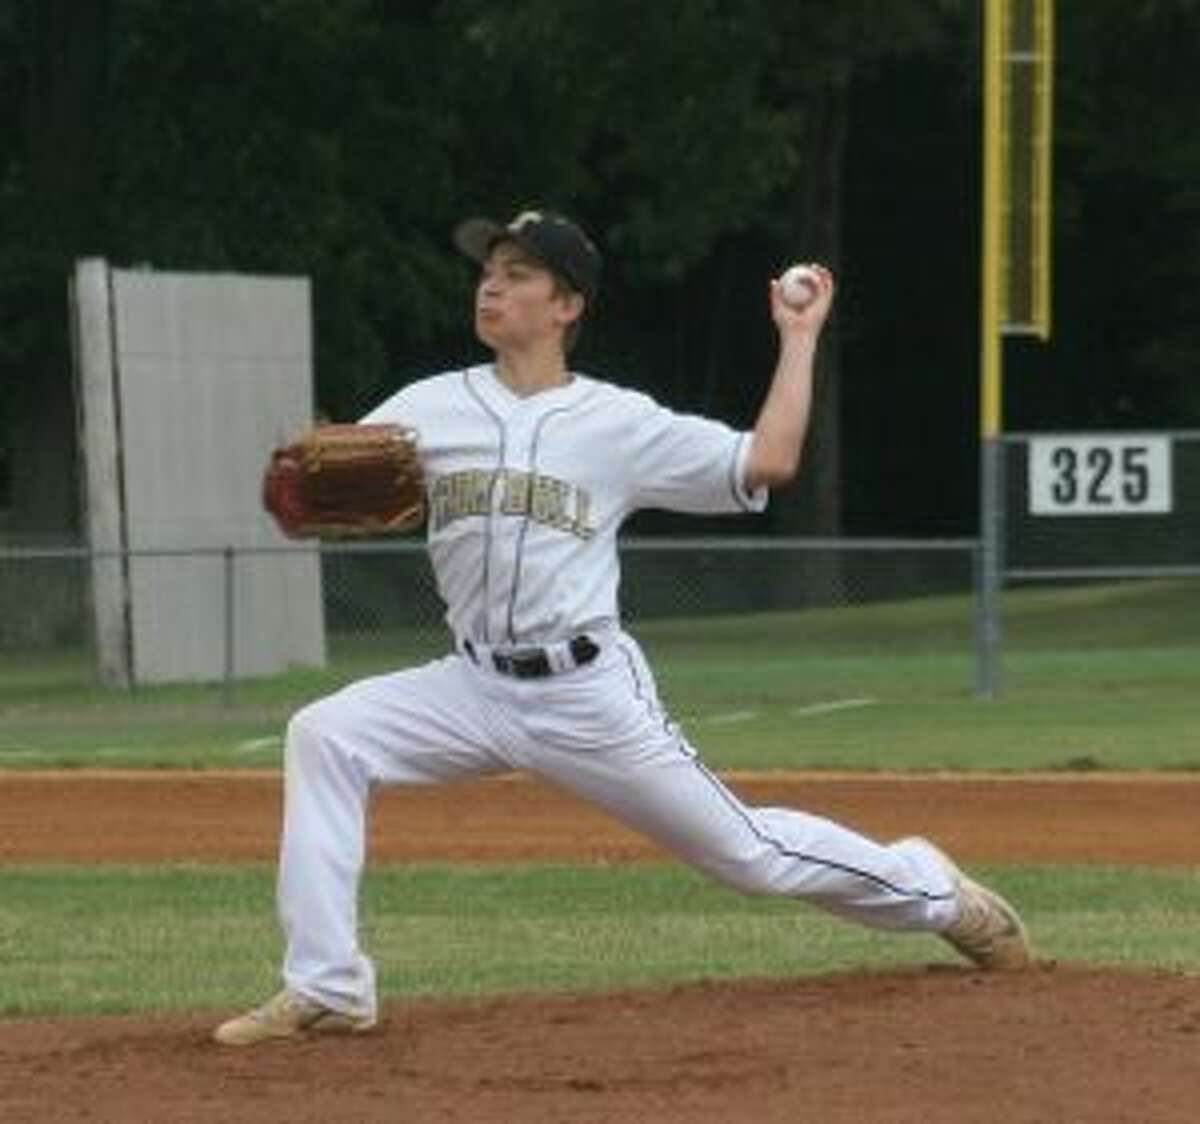 Ray Leonzi pitched Trumbull to a 5-3 victory over Brattleboro (Vt.). - Bill Bloxsom photos